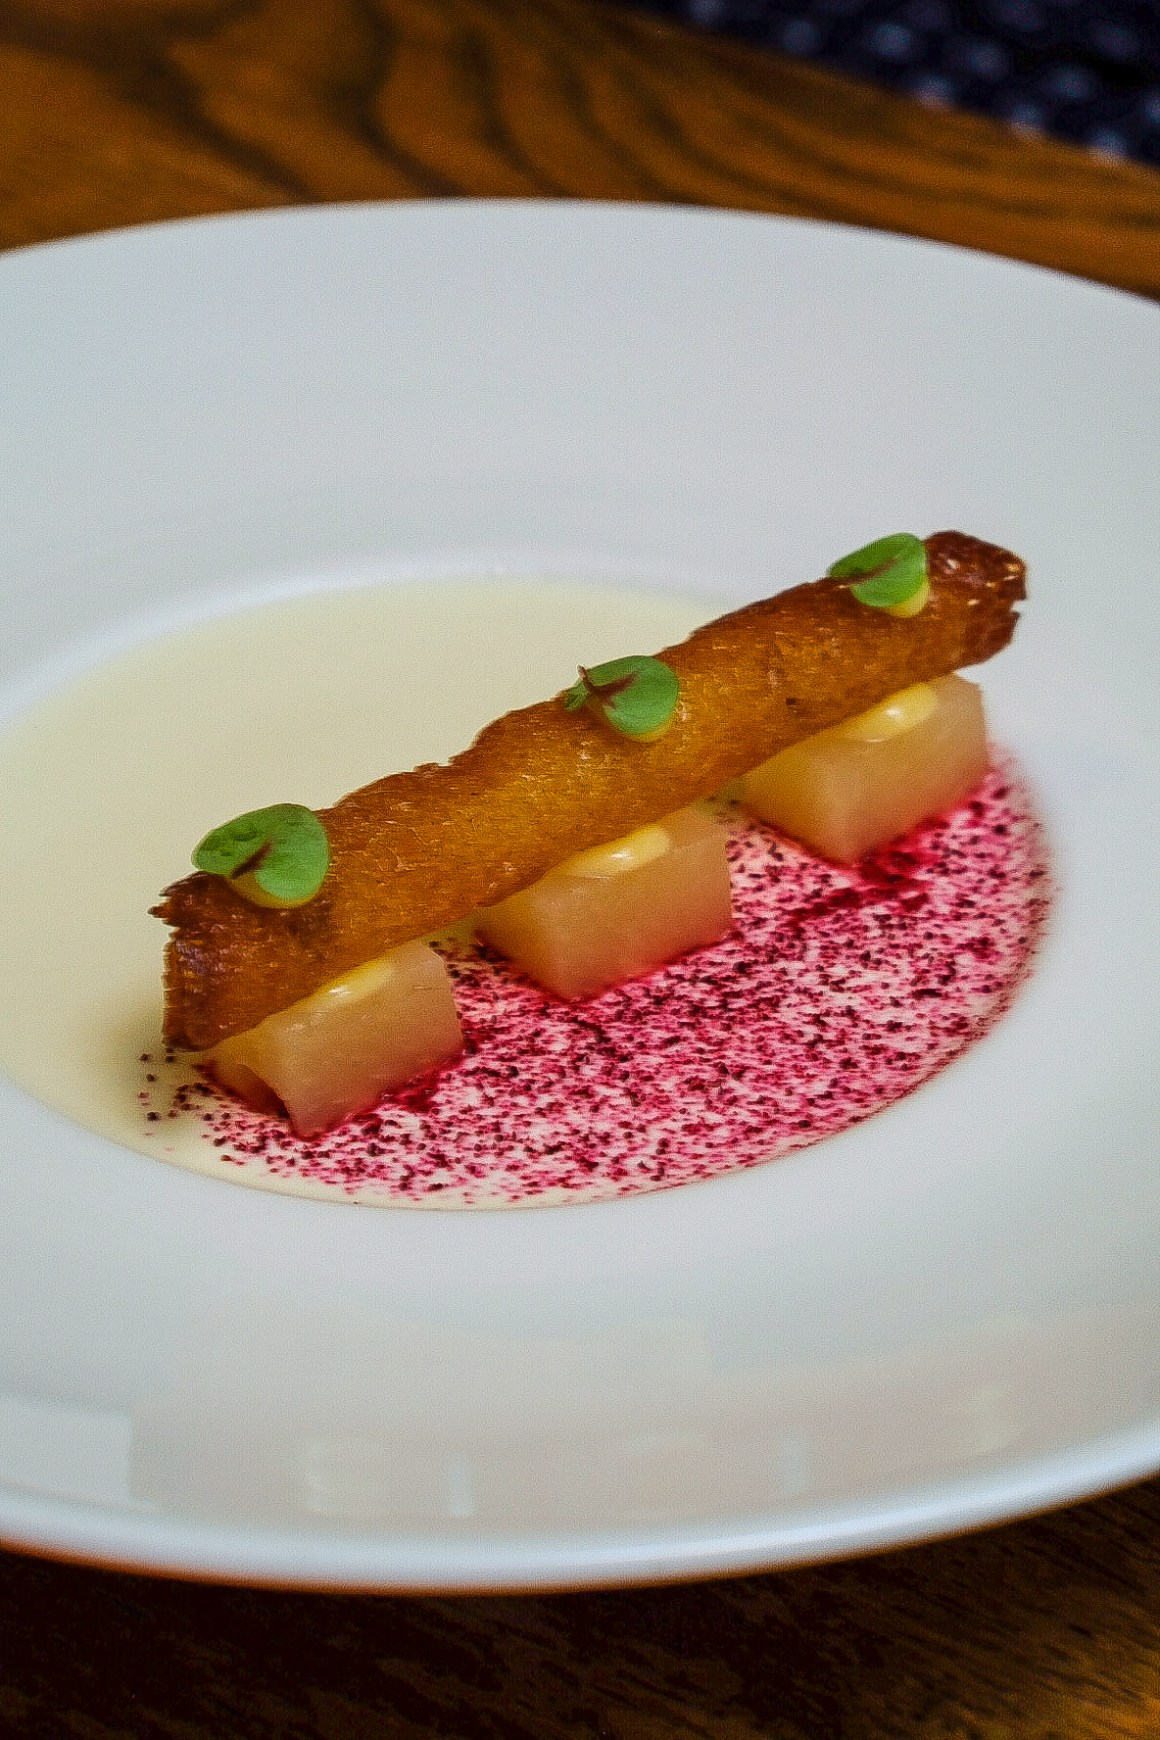 New Menu By Chef Mariana Campos D' Almeida At The Butcher's Wife - Lemongrass Panna Cotta,($13)